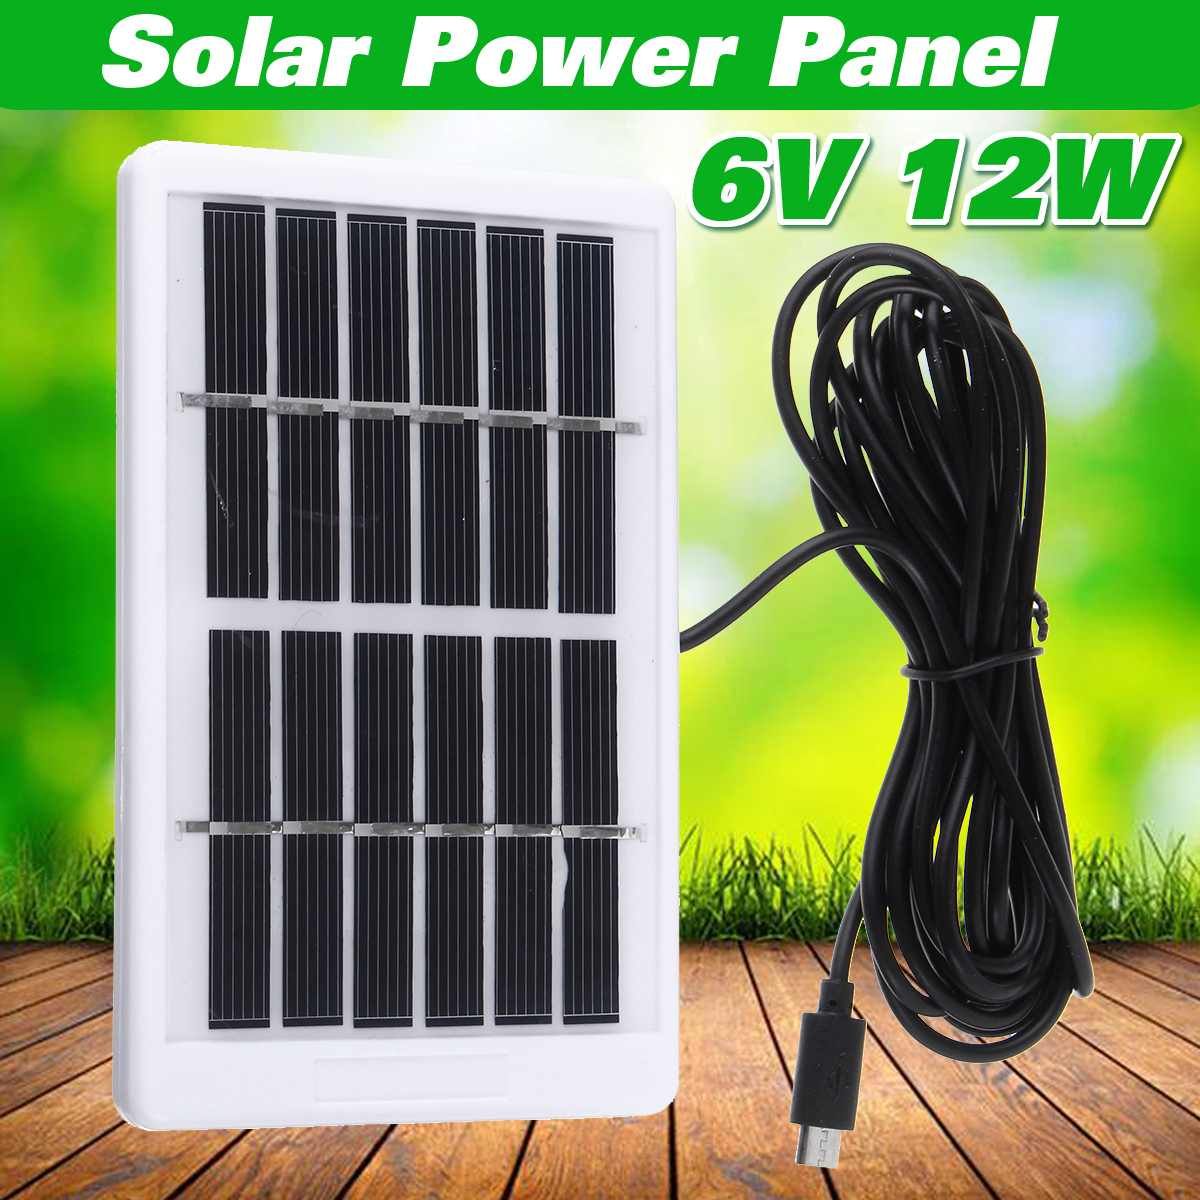 Energy-Saving Solar Panel with USB power interface for Outdoor Camping